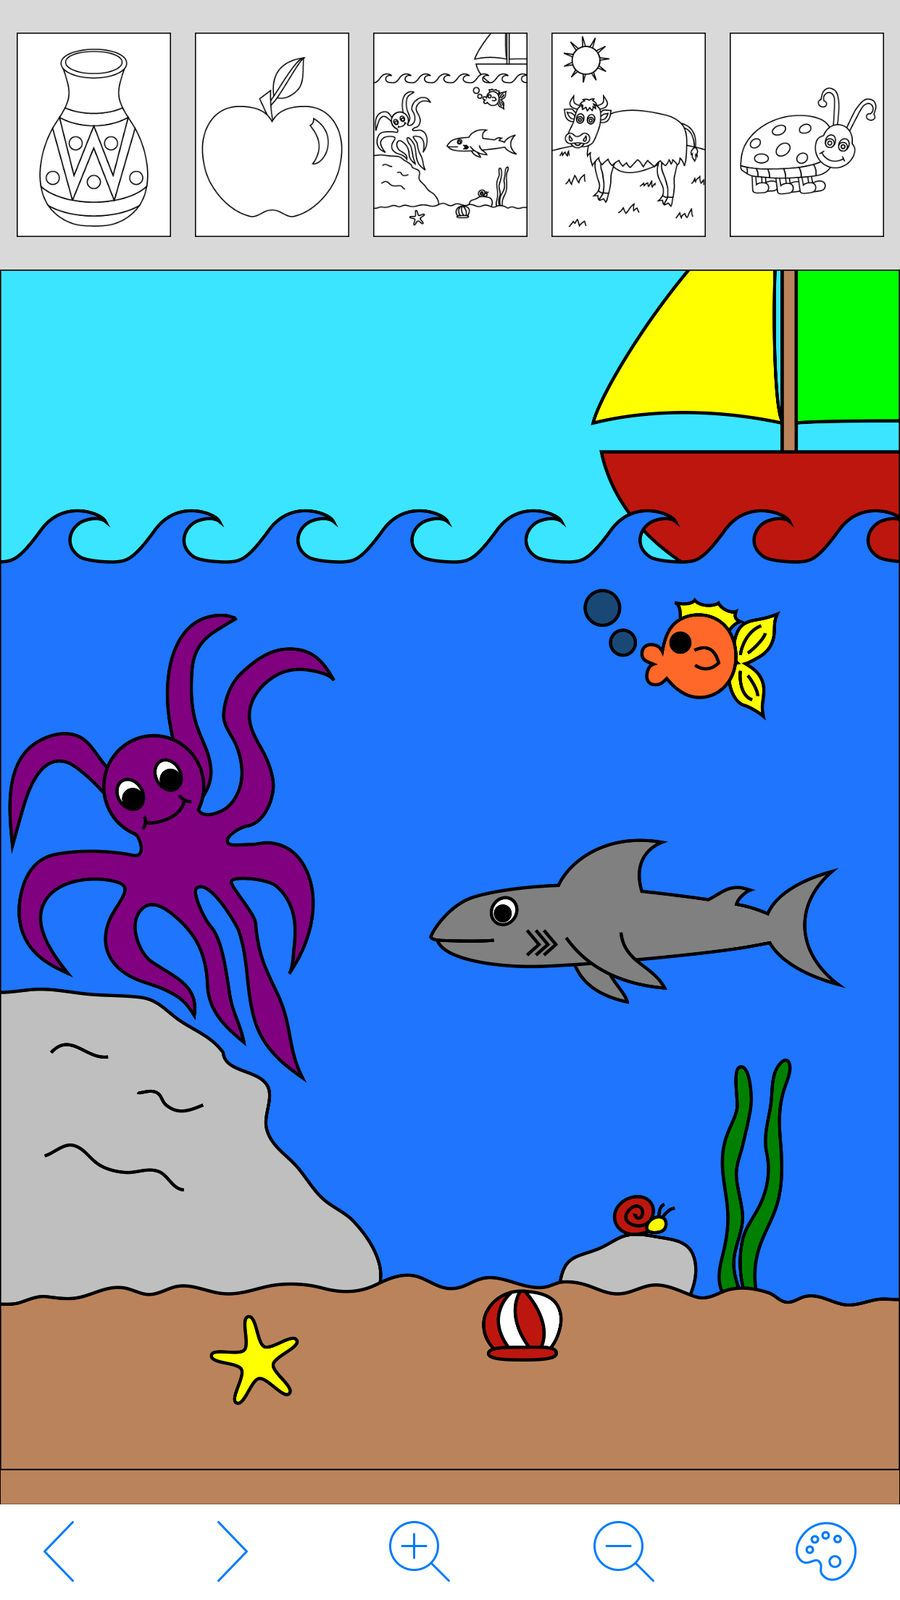 My Coloring Book Free #Education#Games#ios#Family